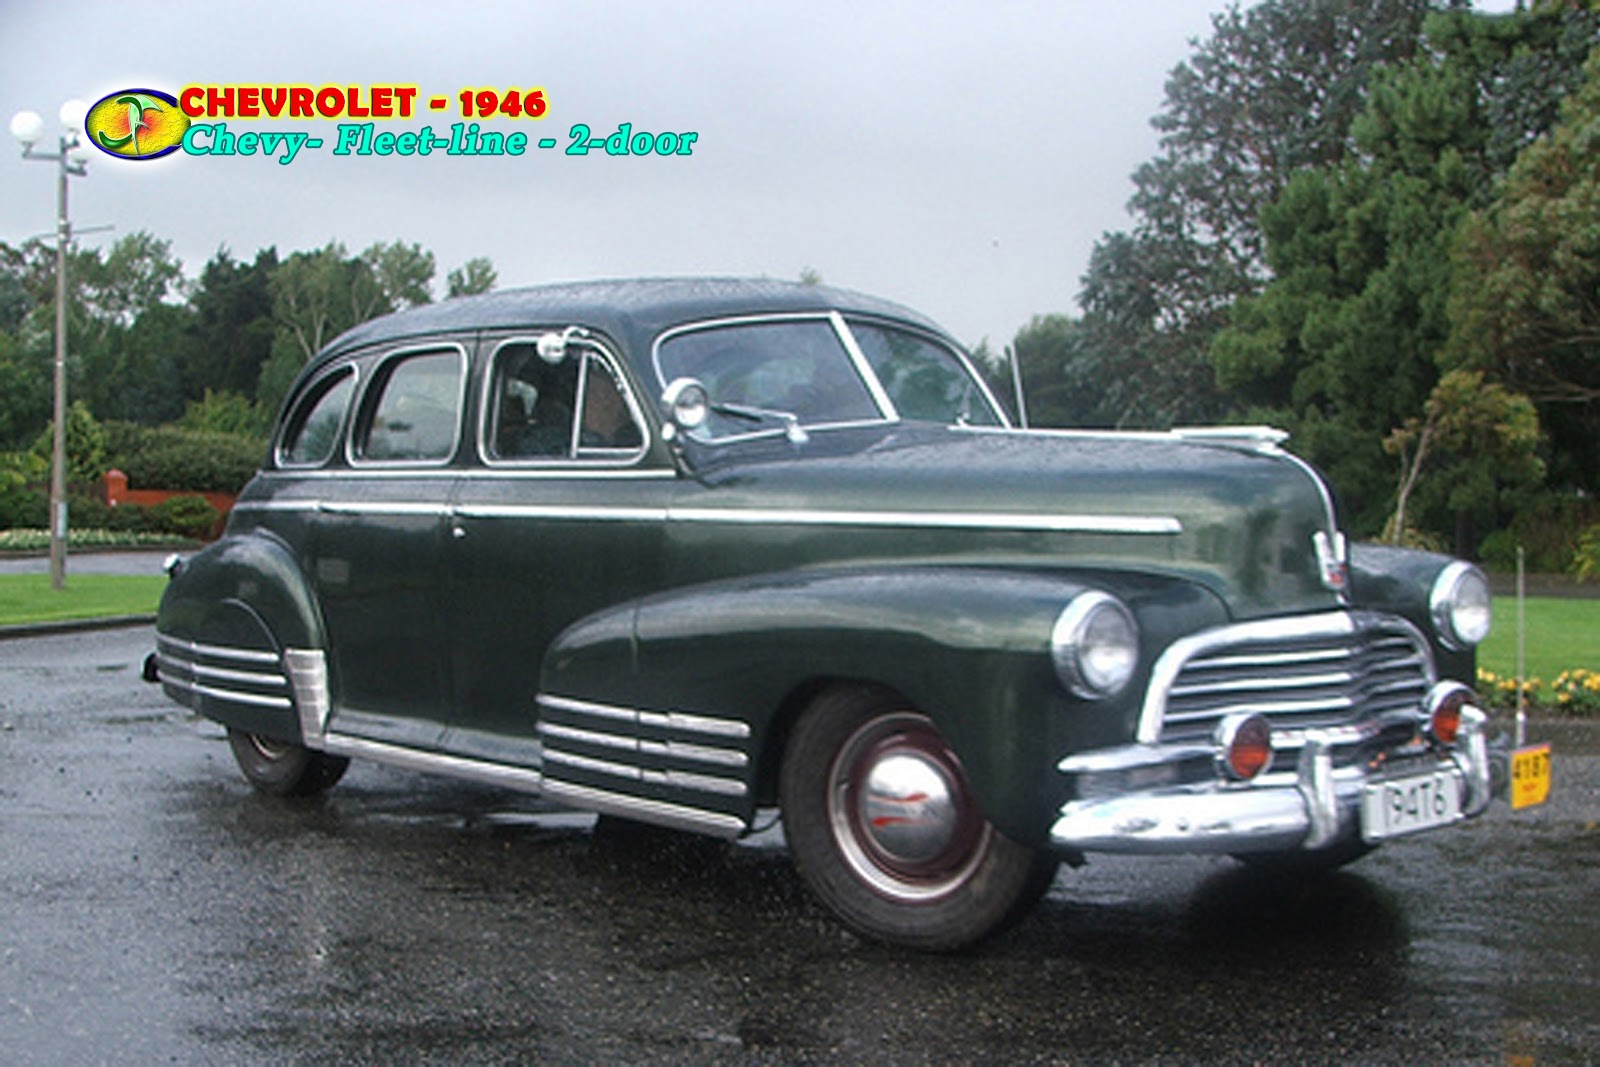 1946 chevy fleetline 4 door carnutts info for 1946 chevy 4 door sedan